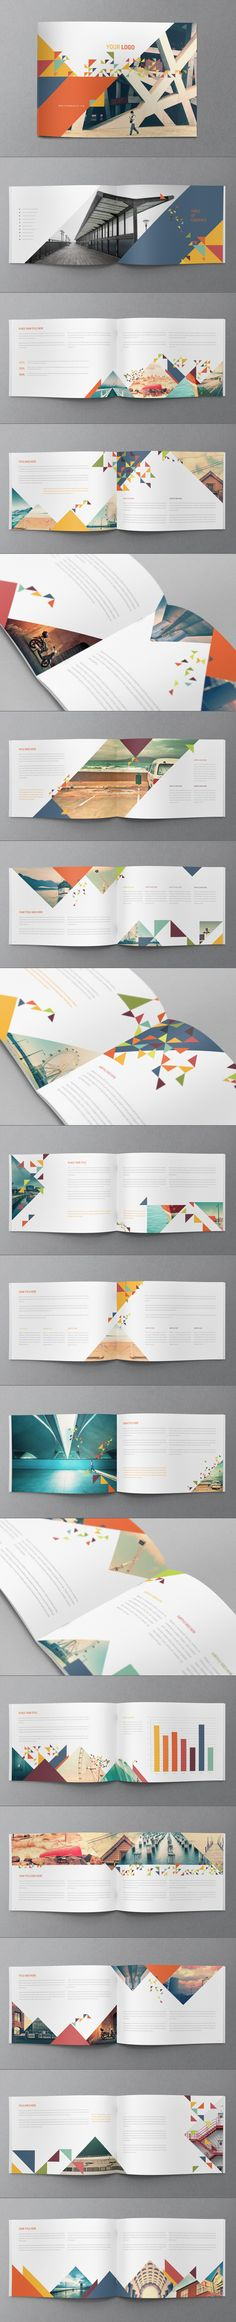 Colorful Modern Brochure. Download here: http://graphicriver.net/item/colorful-modern-brochure/7675852?ref=abradesign #design #brochure